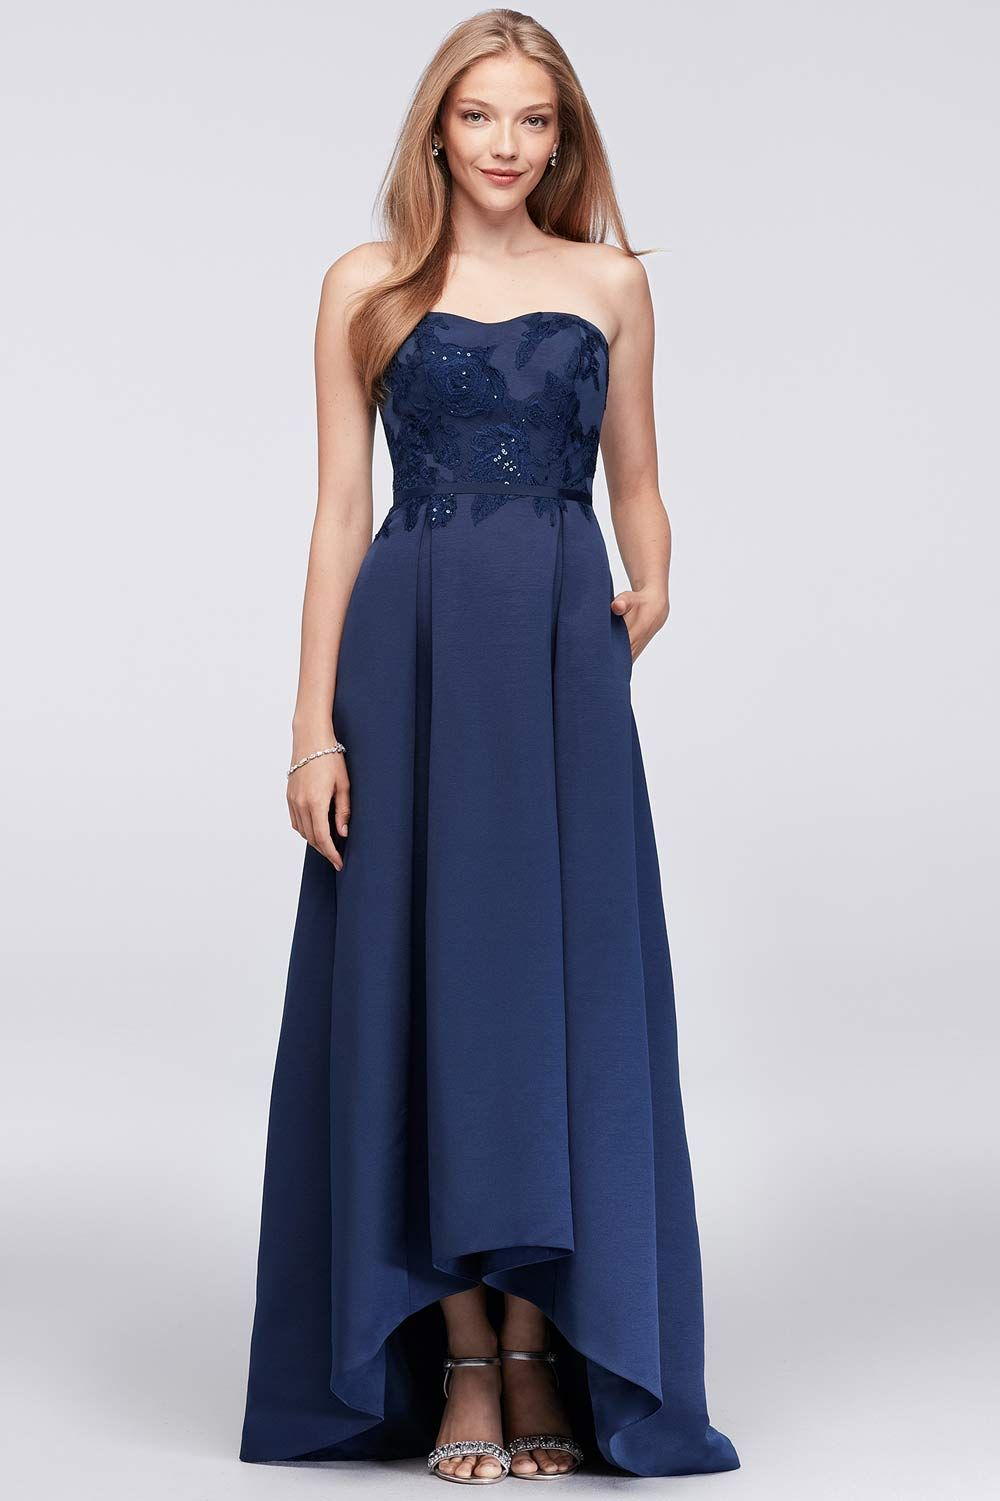 Stylish navy bridesmaid dresses your girls will love nancyus